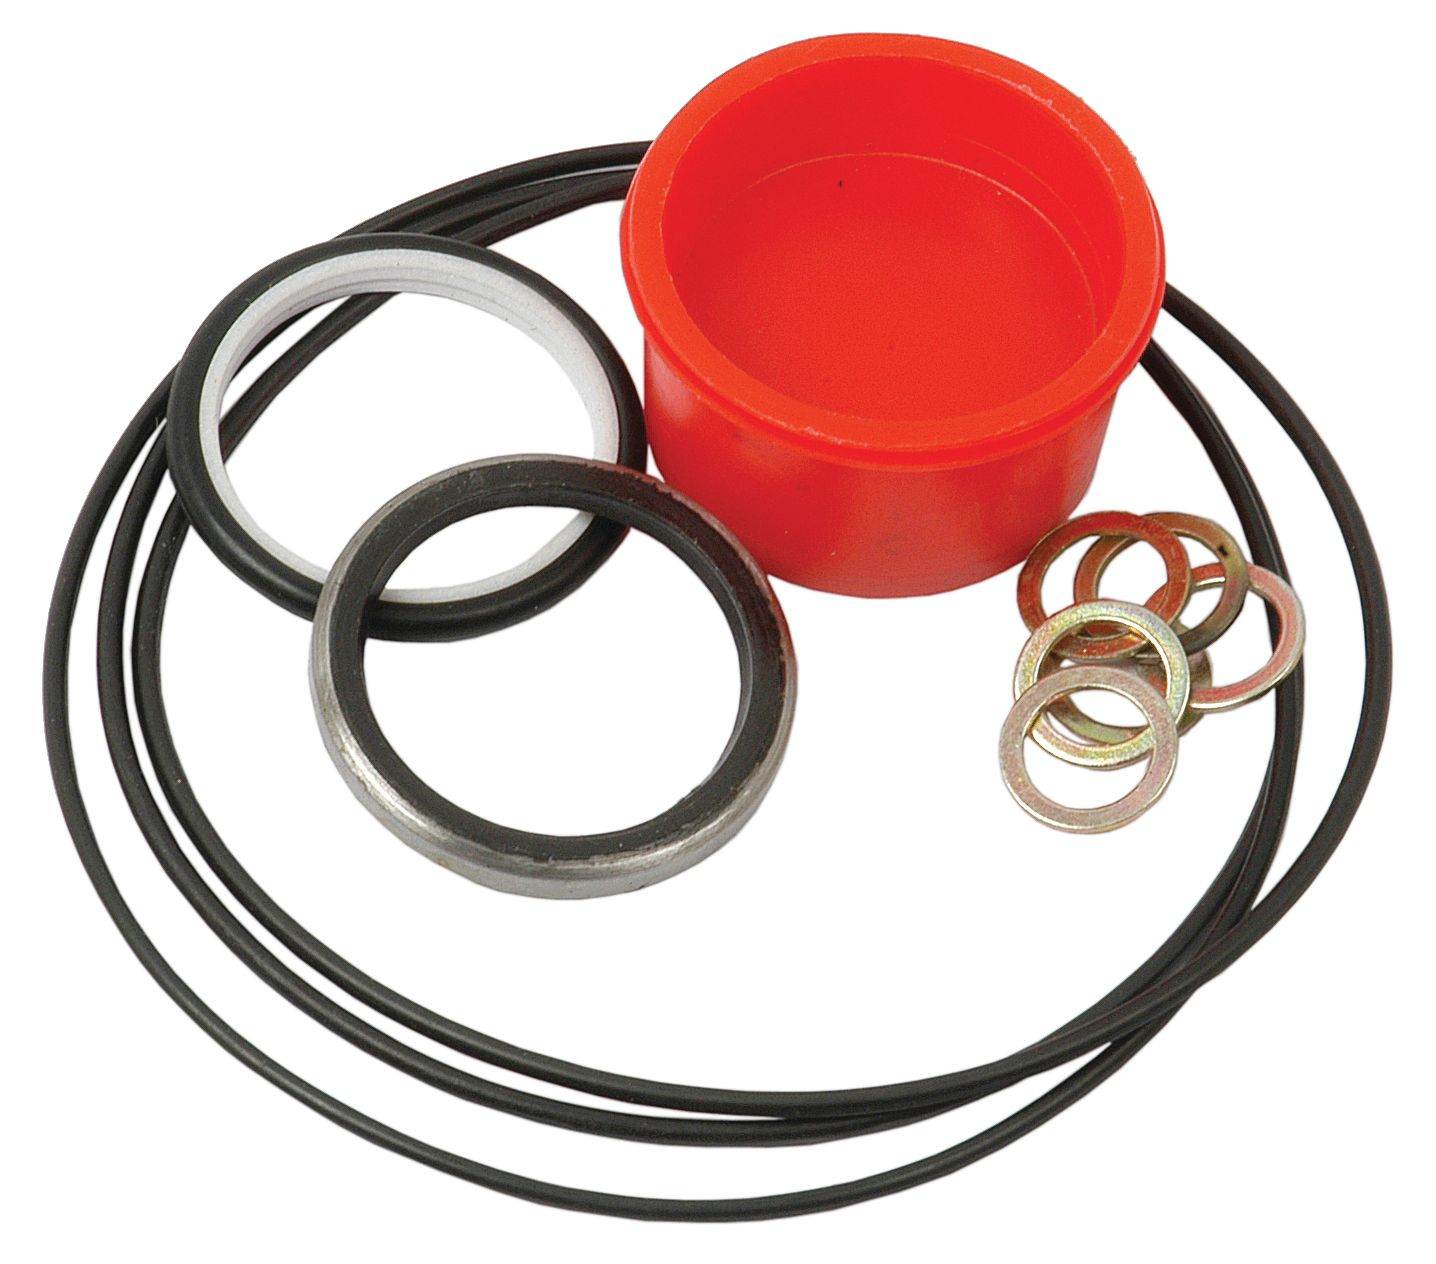 LAVERDA SEAL KIT-ORBITROL UNIT 41499